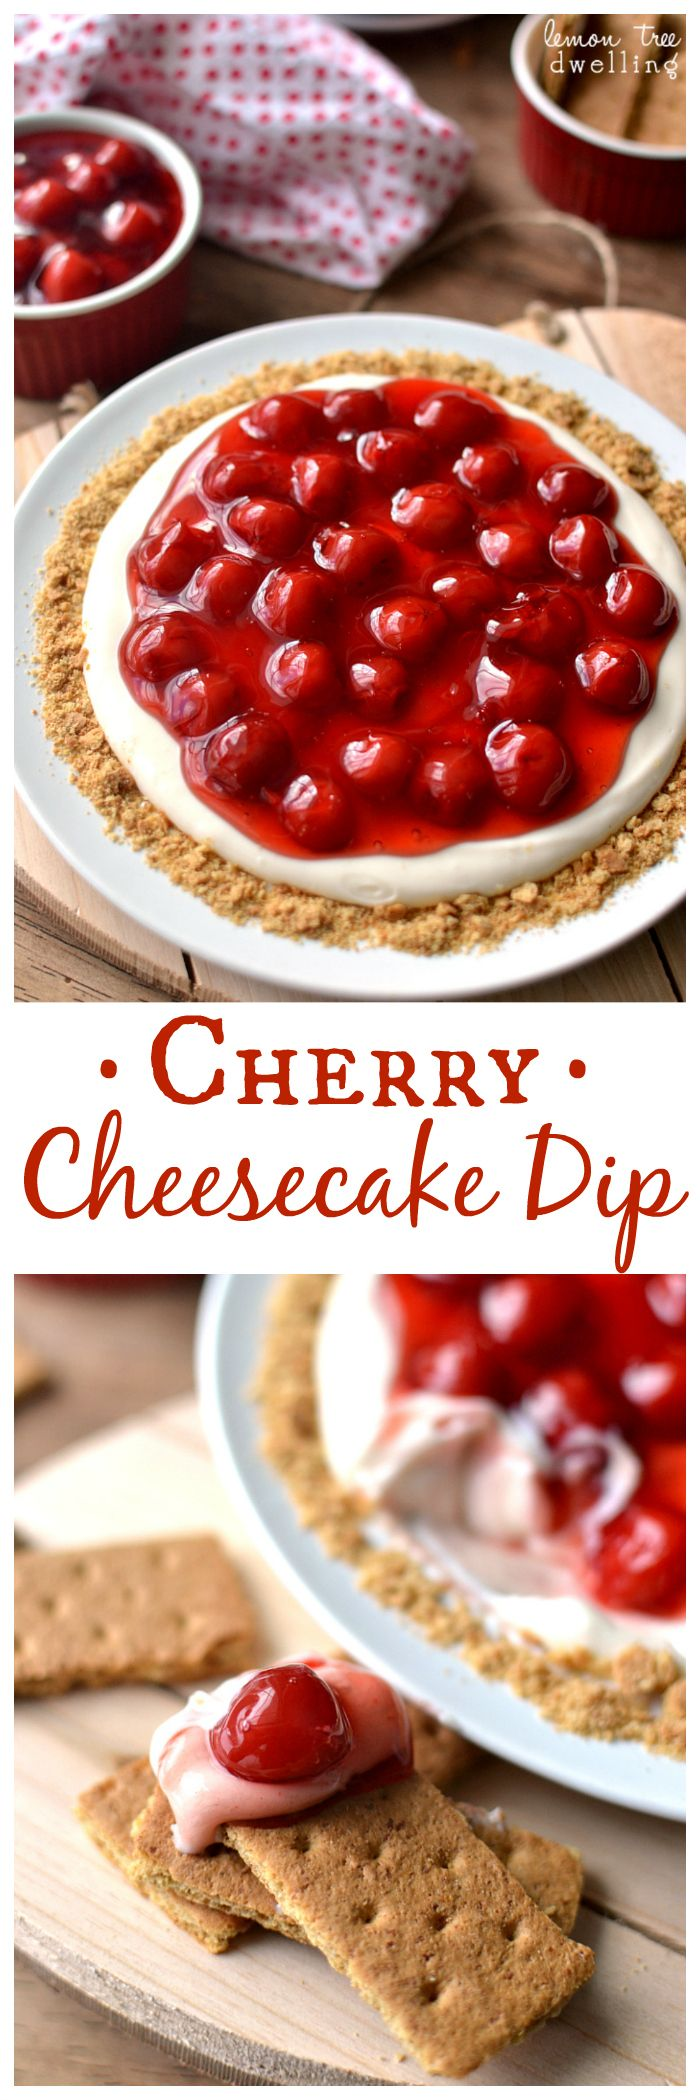 The BEST Cherry Cheesecake Dip! Serve it with graham crackers and it tastes just like cherry cheesecake!